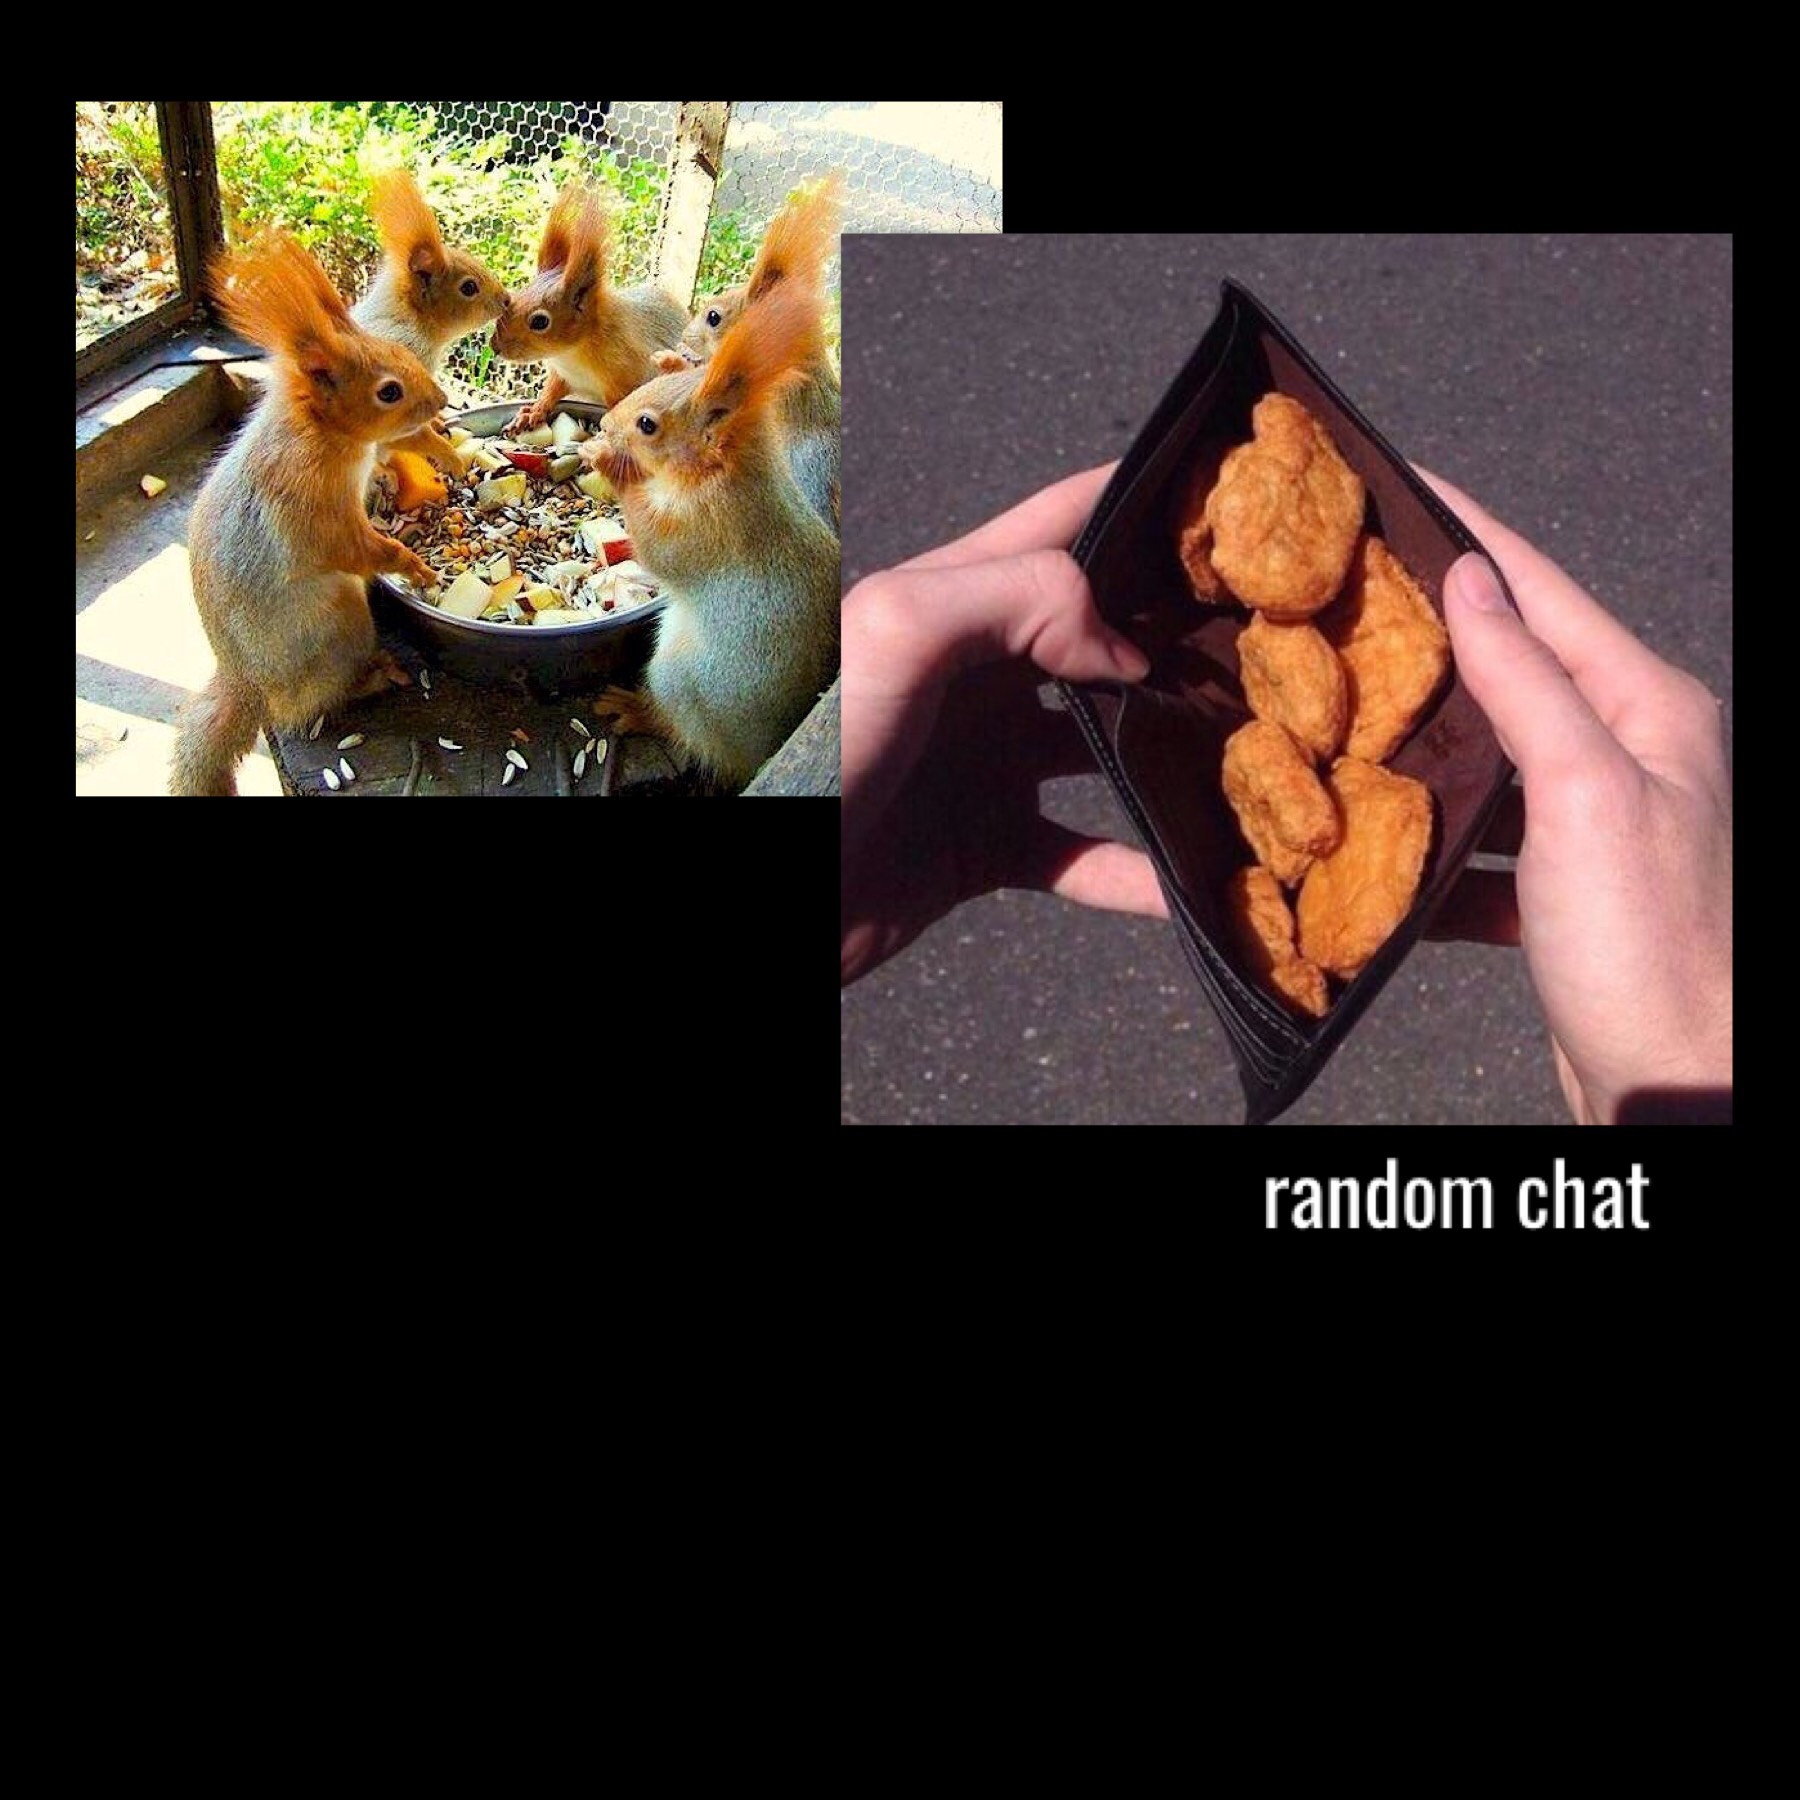 chat about random things and make friends